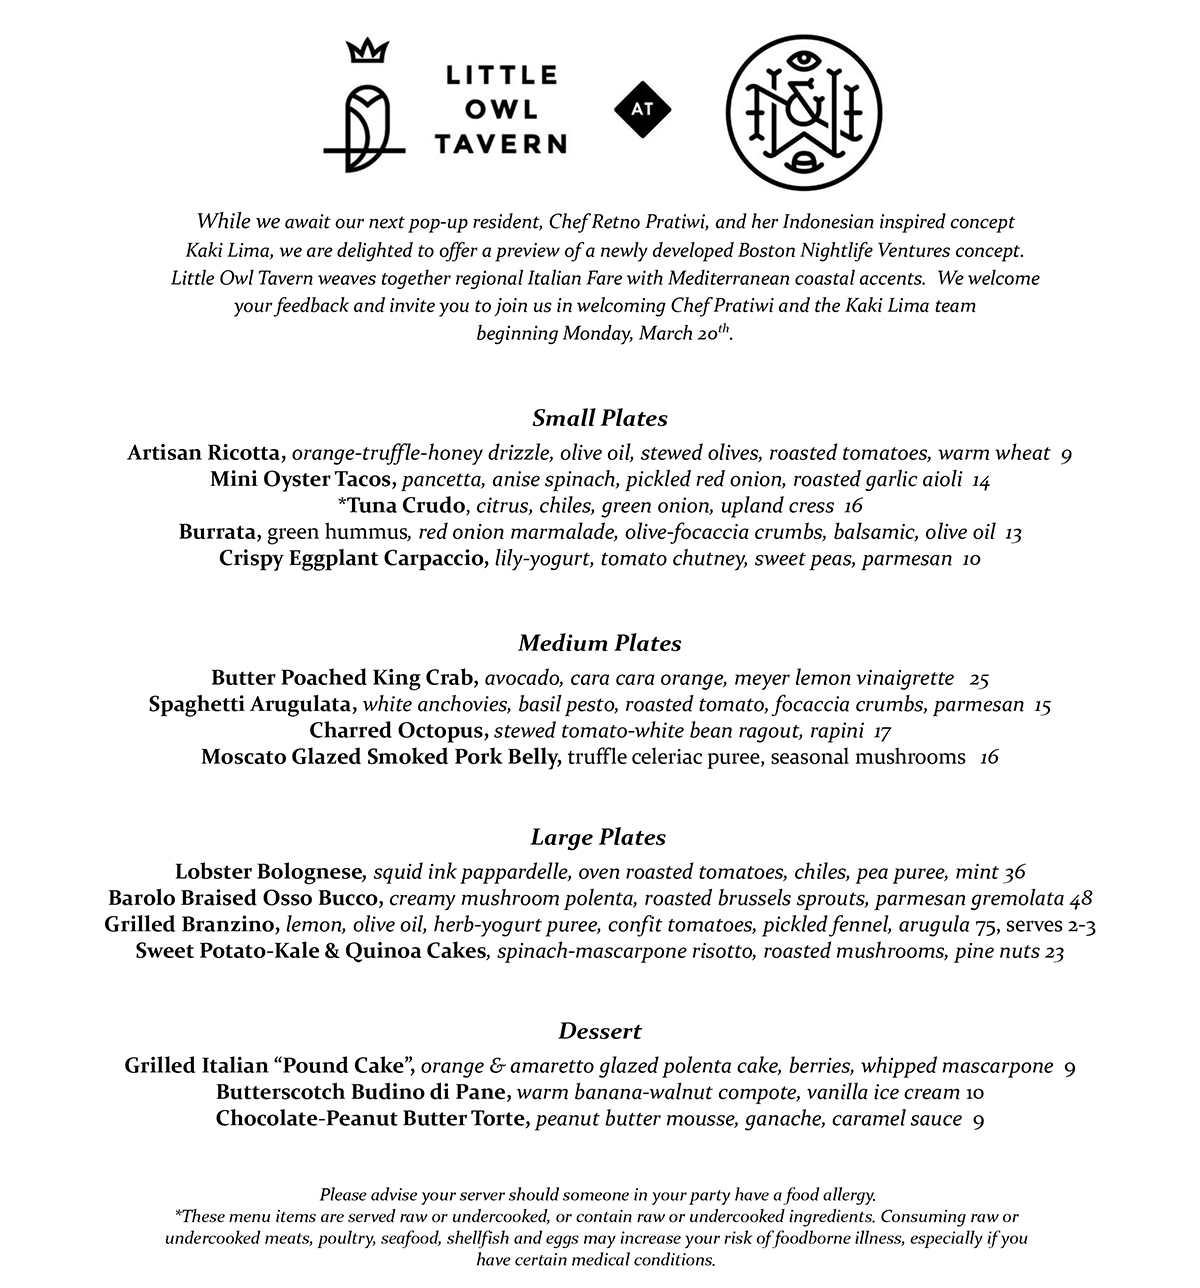 Little Owl Tavern menu at Wink and Nod_1.23.17